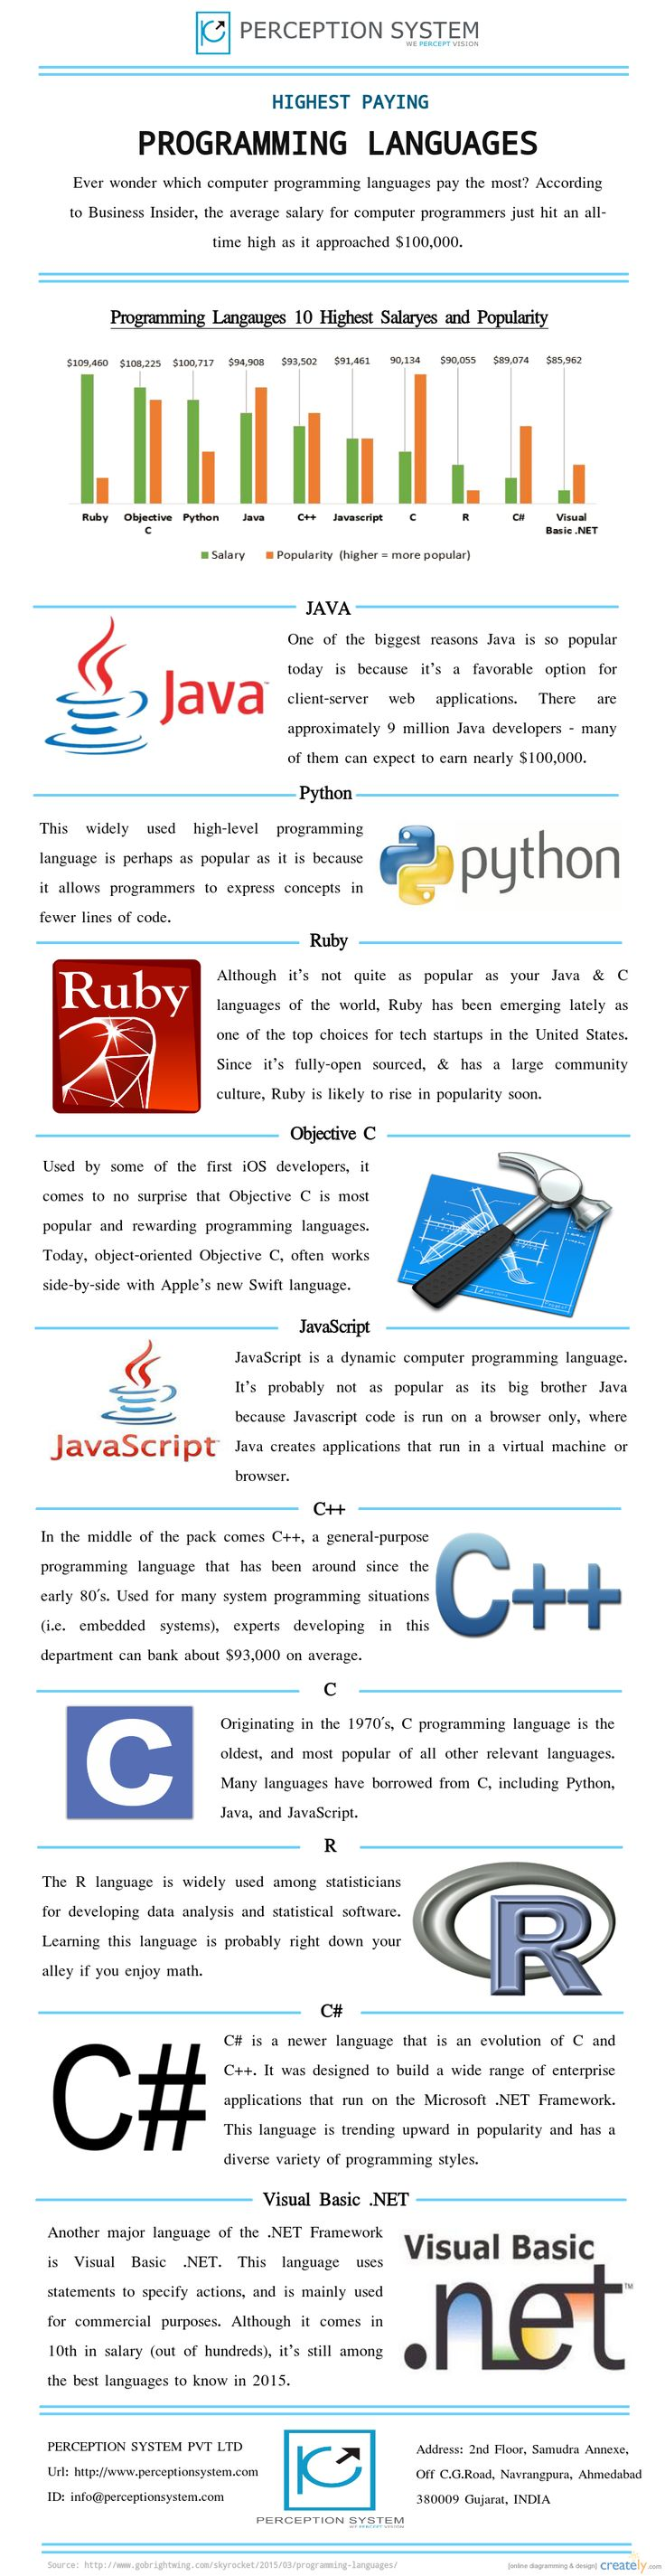 5 Simple Programming Languages To Learn For First-Time ...